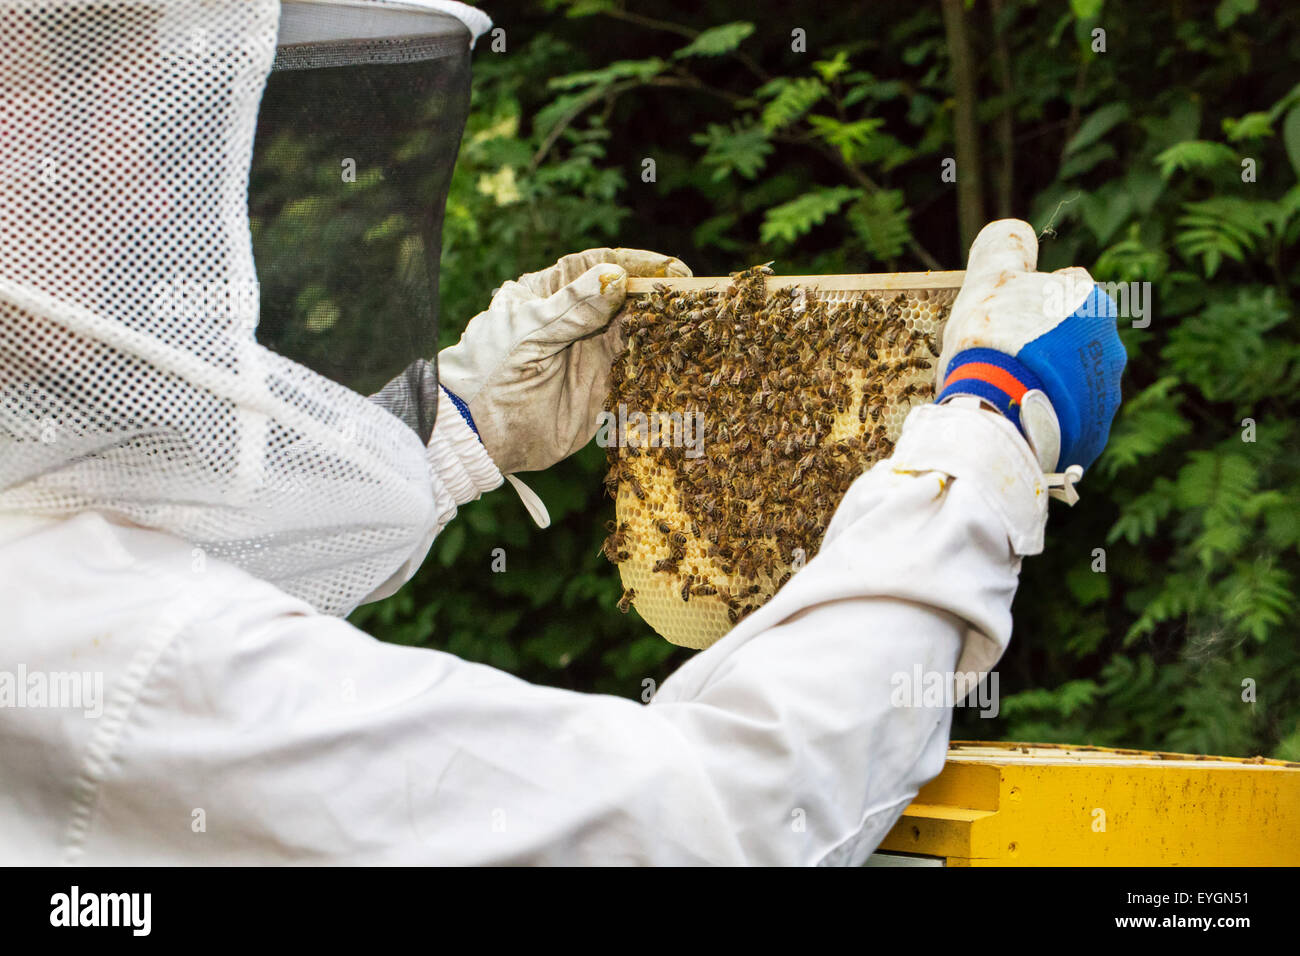 Beekeeper in protective clothing inspecting frame with honeycomb from honey bees (Apis mellifera) - Stock Image